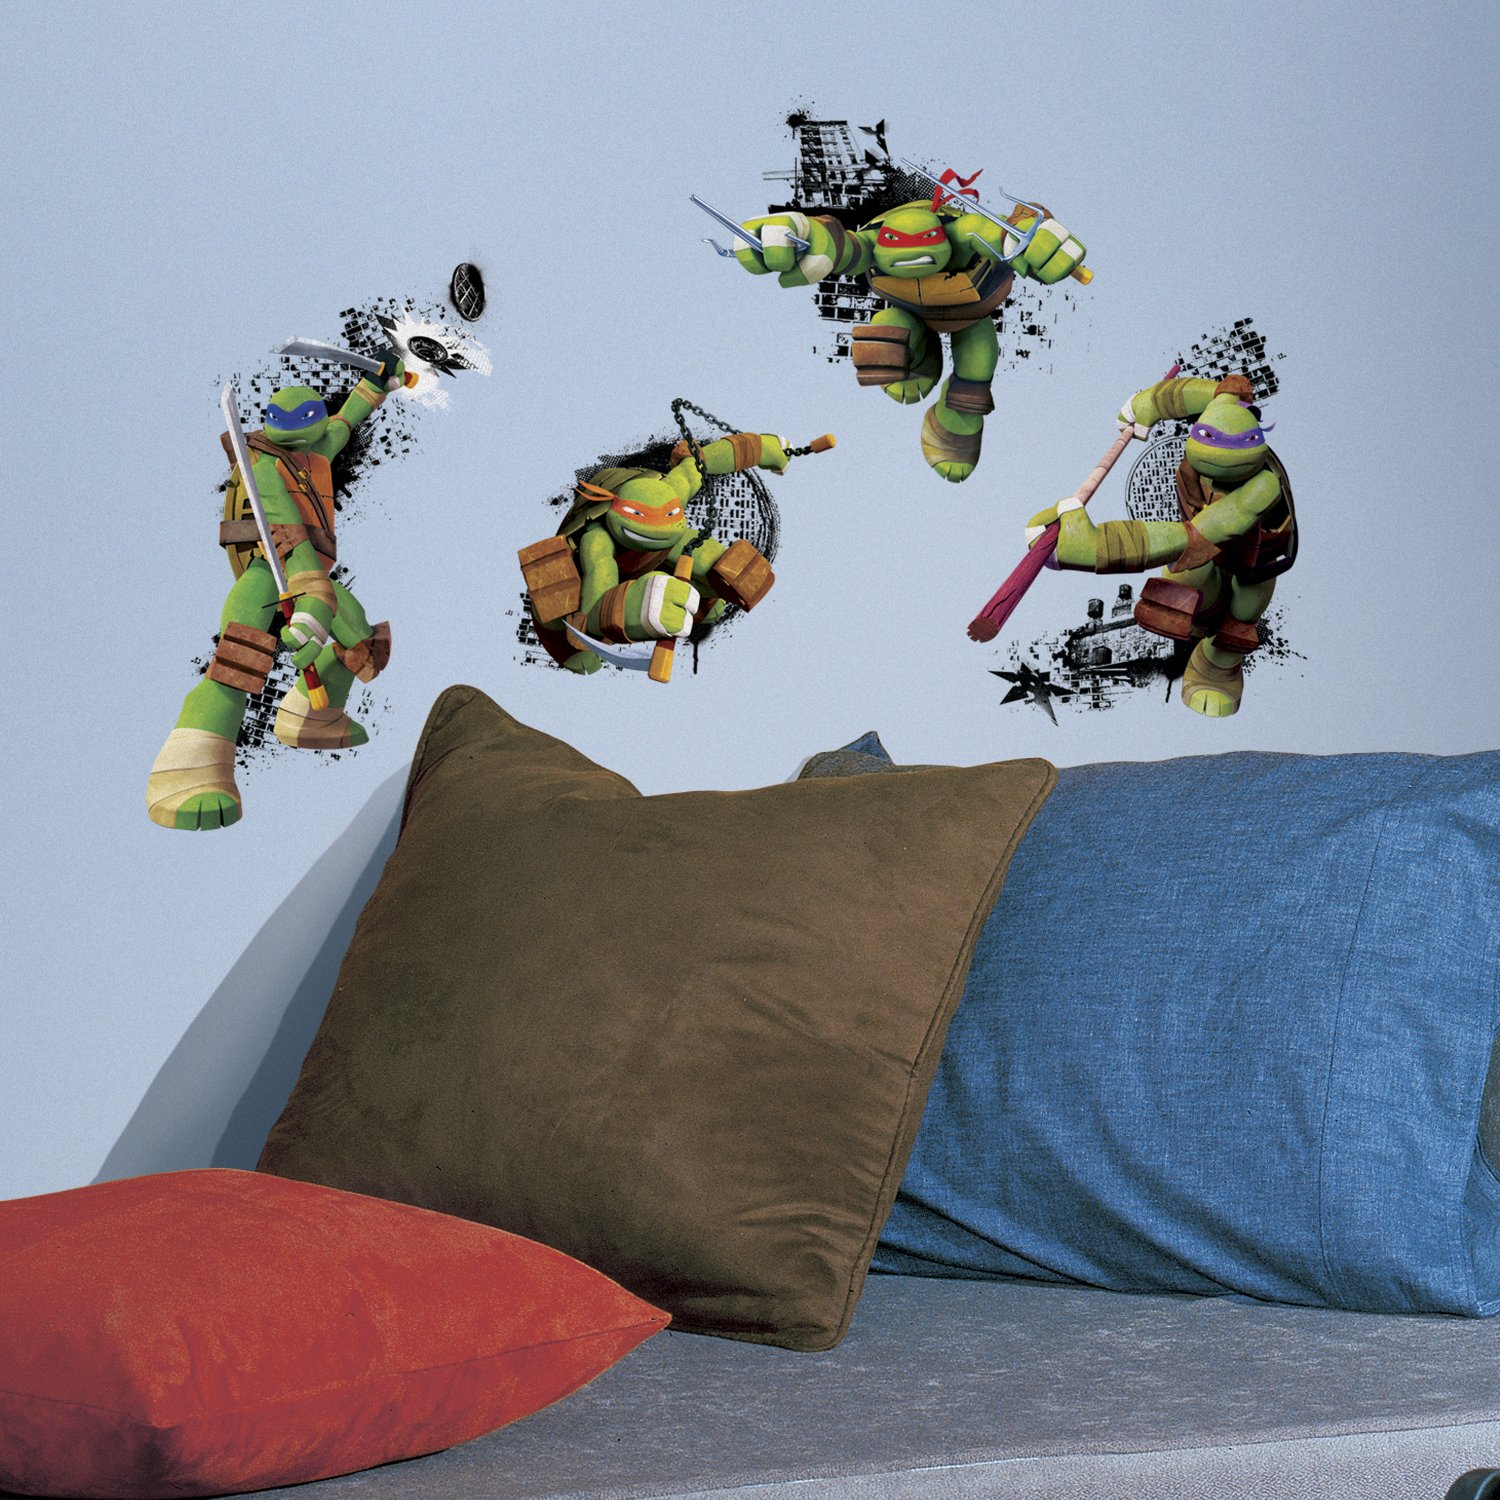 "RoomMates RMK2769TB Teenage Mutant Ninja Turtles in Action Peel and Stick Giant Wall Decals, 18"" x 40"""